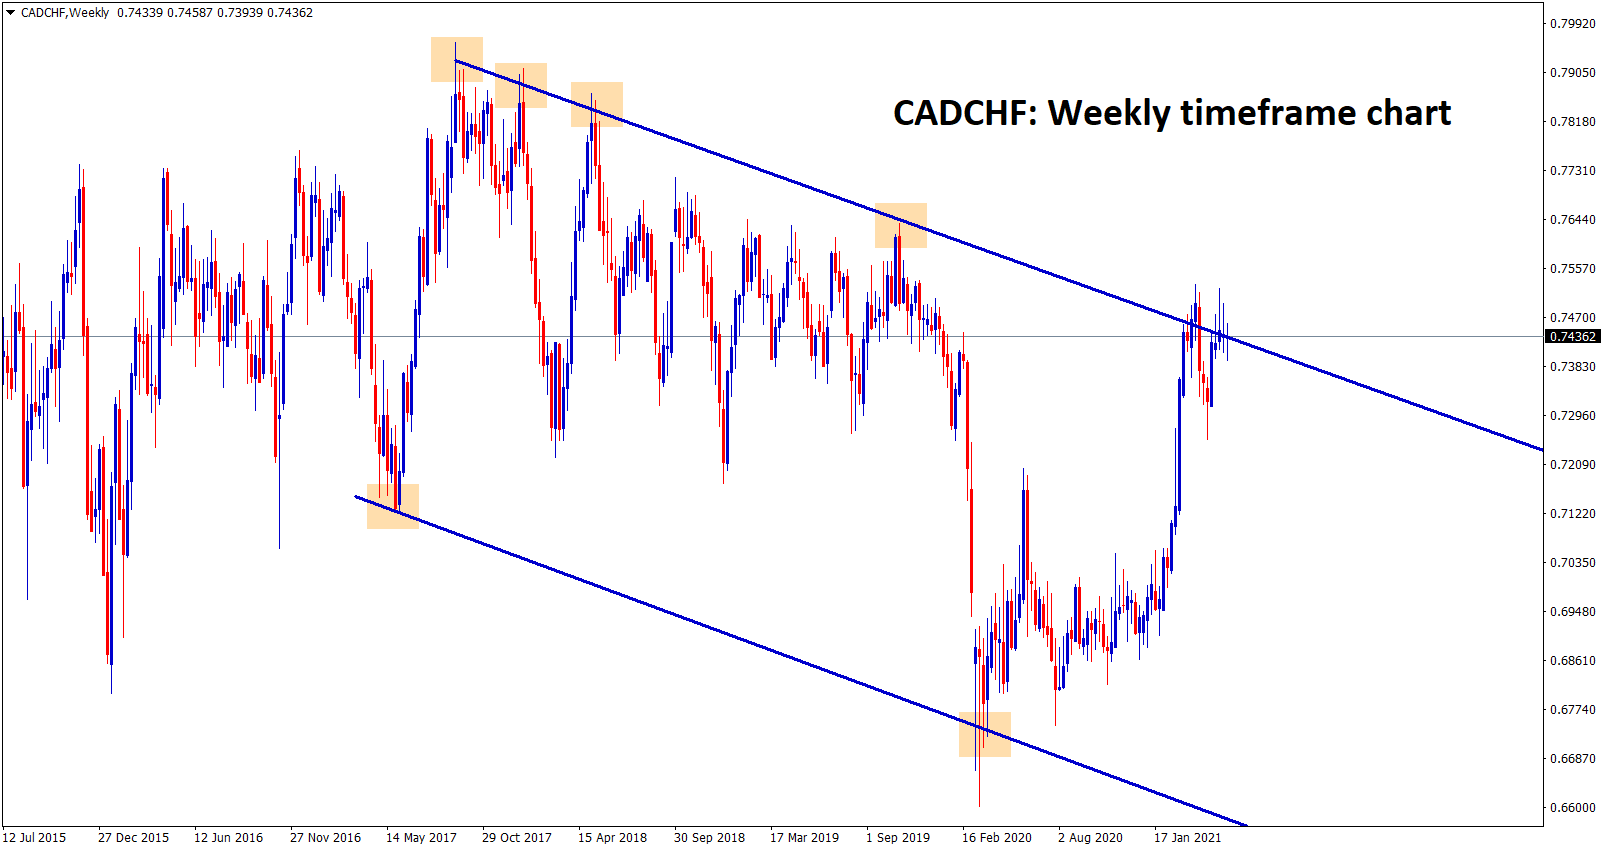 CADCHF is standing at the major lower high level of Downtrend descending channel